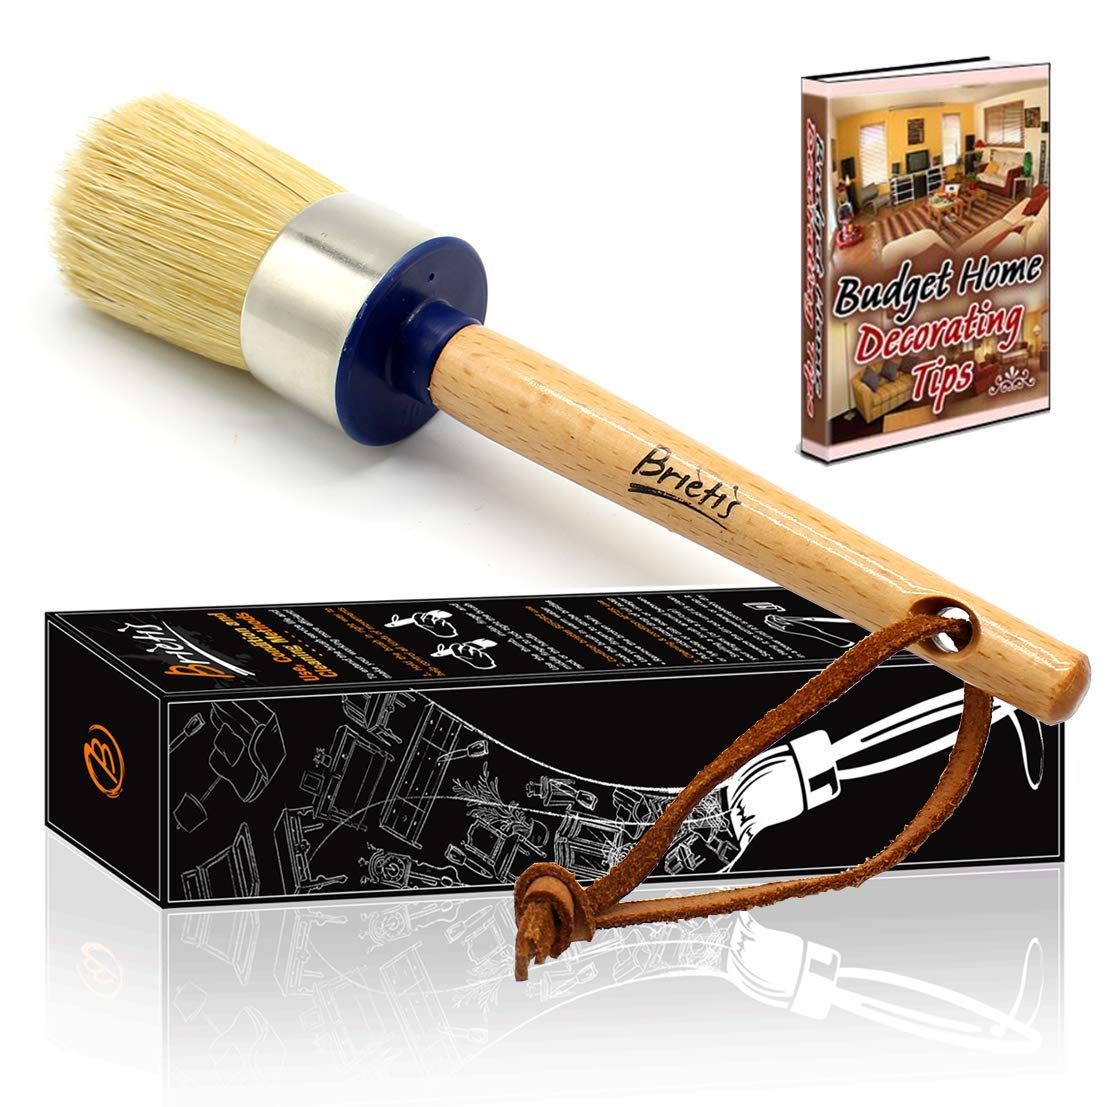 Brietis Premium Chalk Brush, Natural Boar bristles, Smooth Coverage for Furniture Painting, Chalked Paint Brushes, Milk Paint Brushes, Stencils, Clear, Large Round Brushes